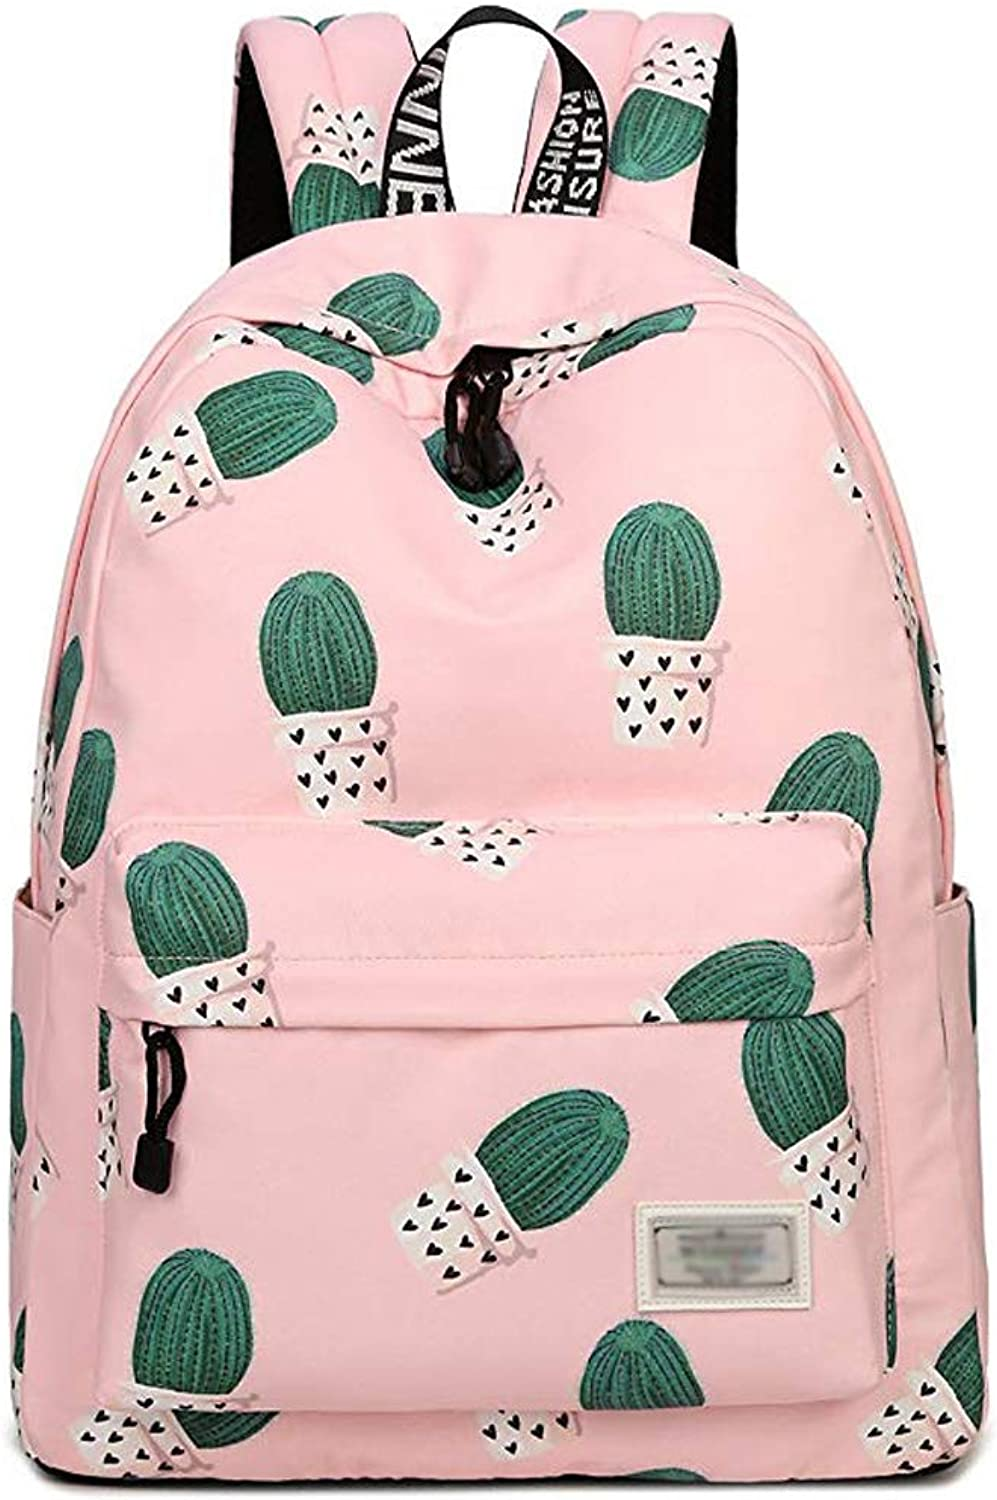 DSSchool bag BackpackCasual Cactus Pattern Backpack Girl Shoulder Bag Wild Backpack Campus Wind Junior High School Student Bag && (color   PINK, Size   12x16x5.5 inches)